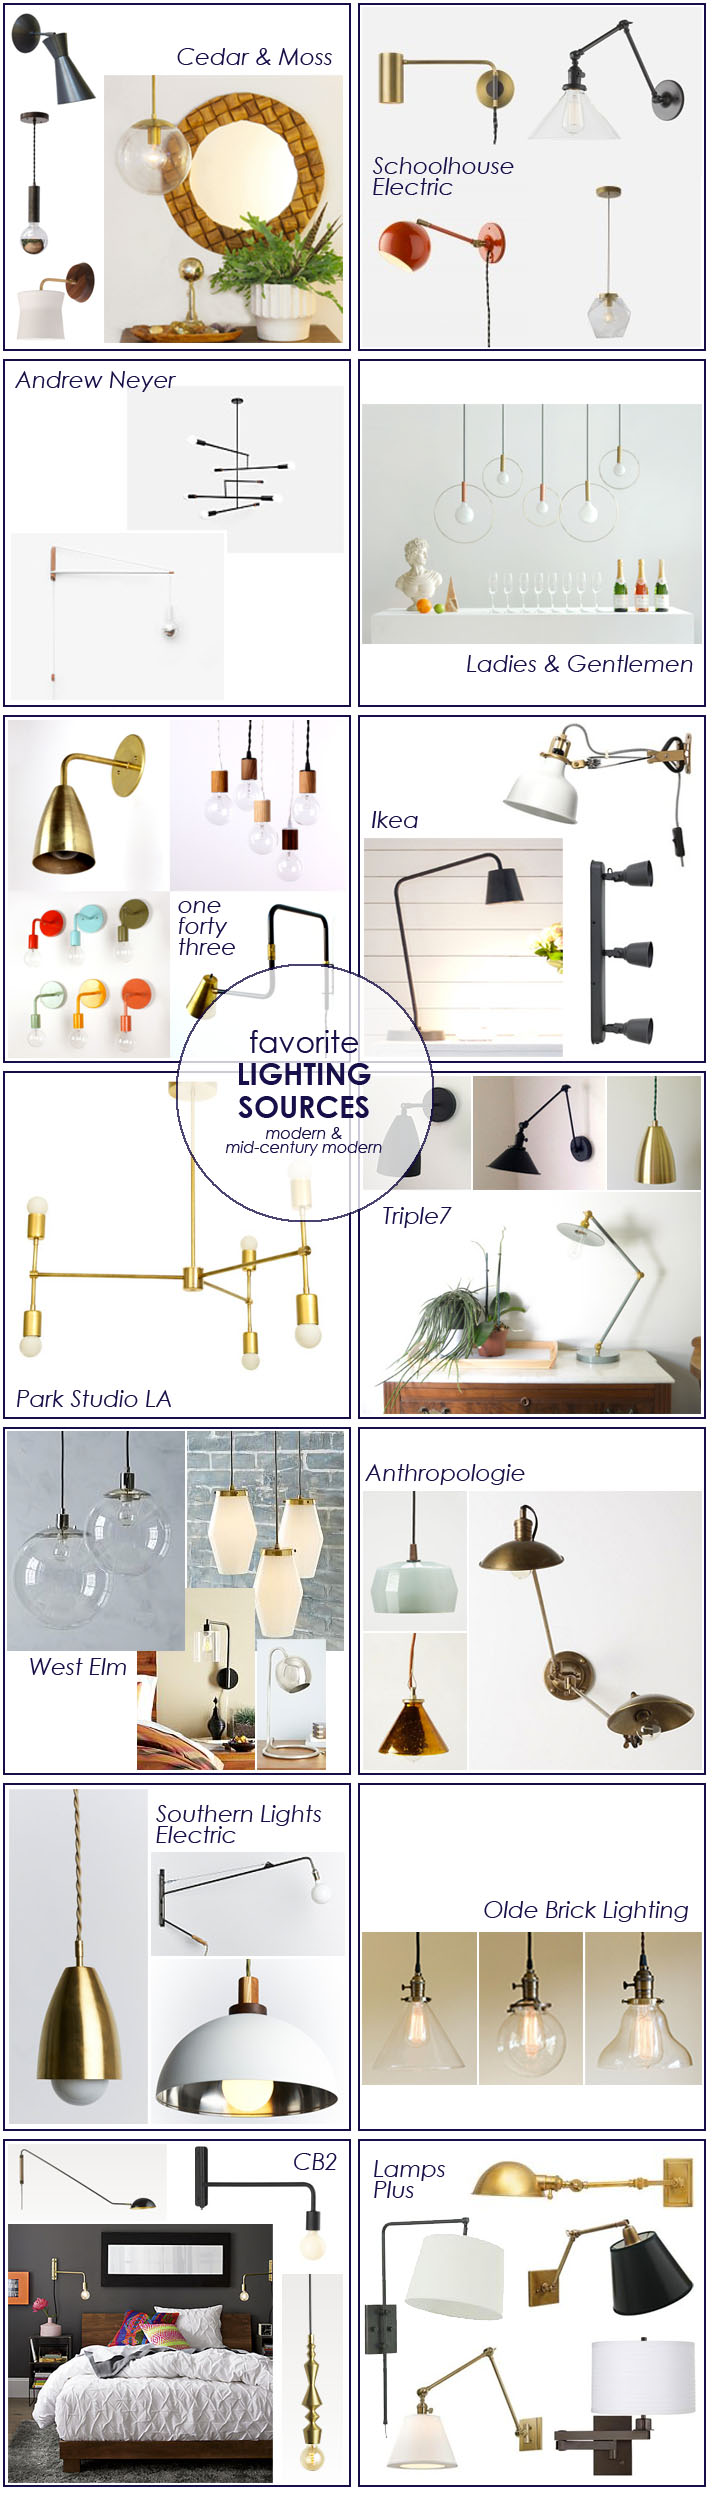 Favorite Home Modern & Mid-Century Modern Lighting Resources | PepperDesignBlog.com